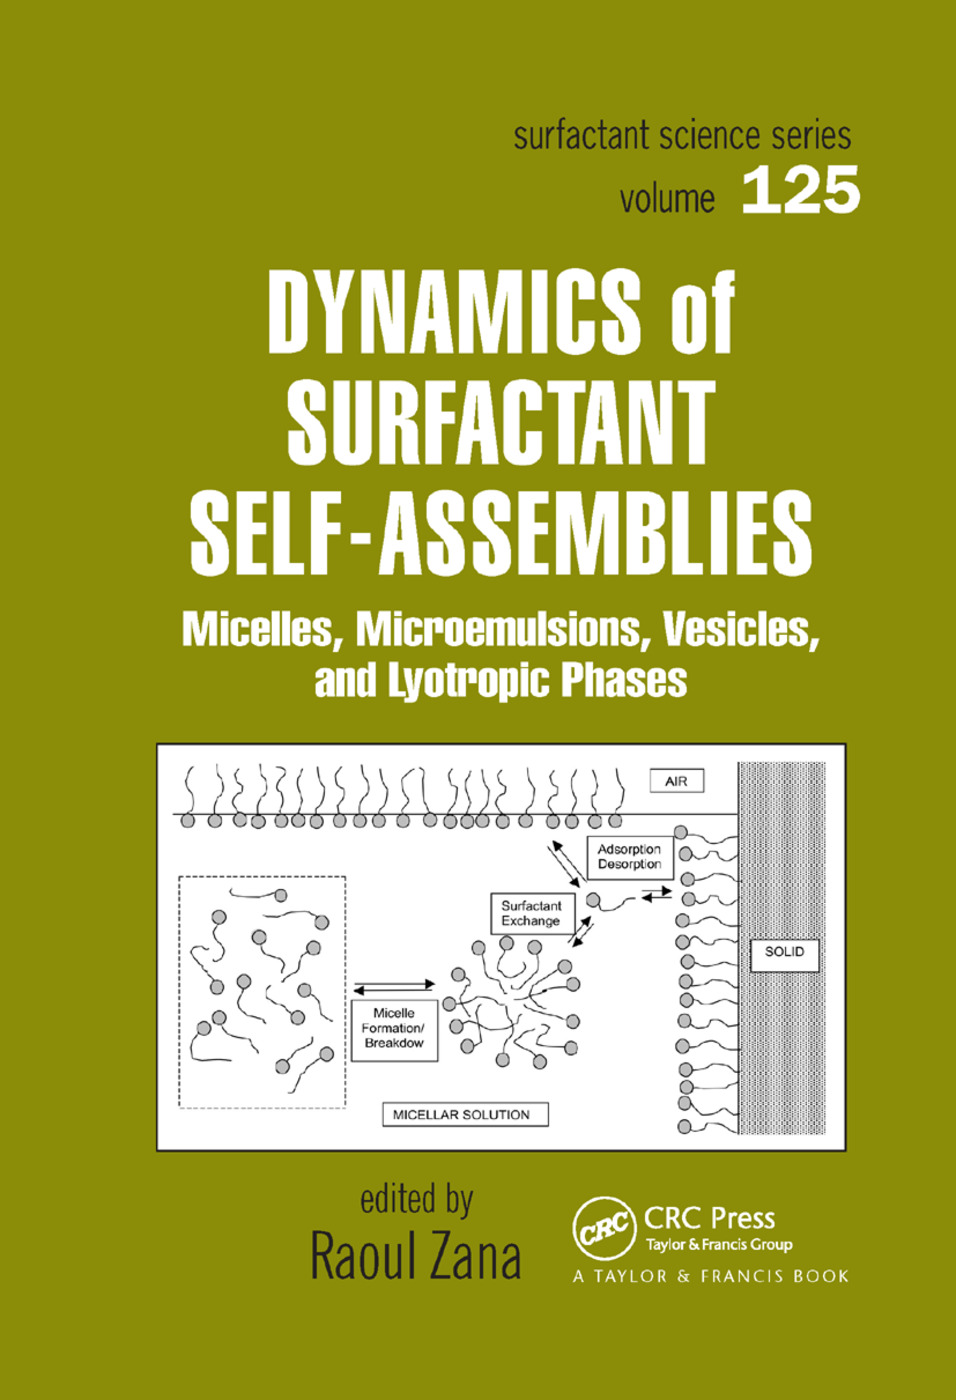 Dynamics of Surfactant Self-Assemblies